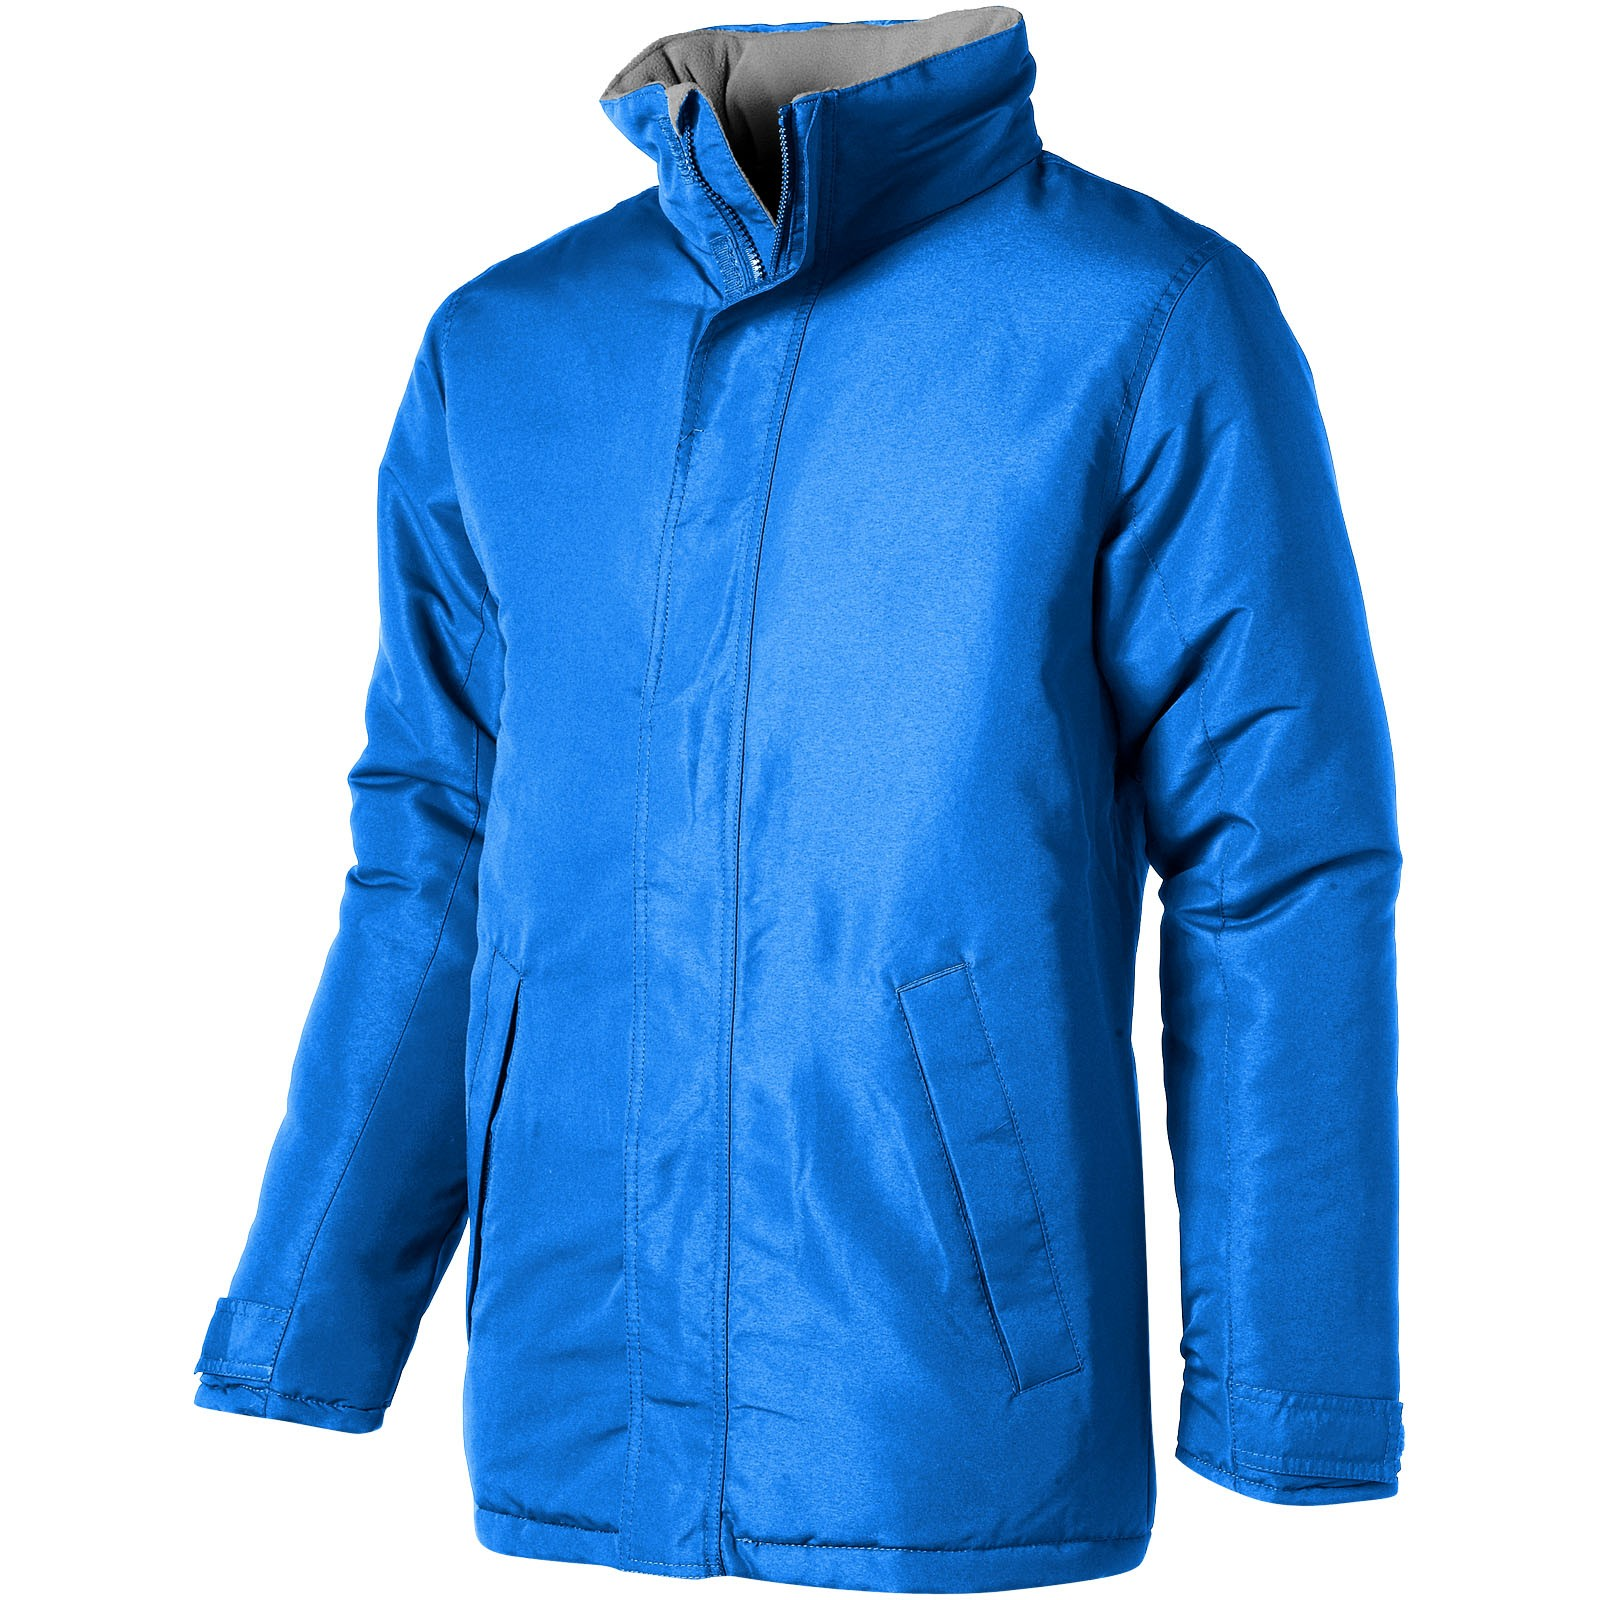 Under Spin insulated jacket - Sky blue / XXL